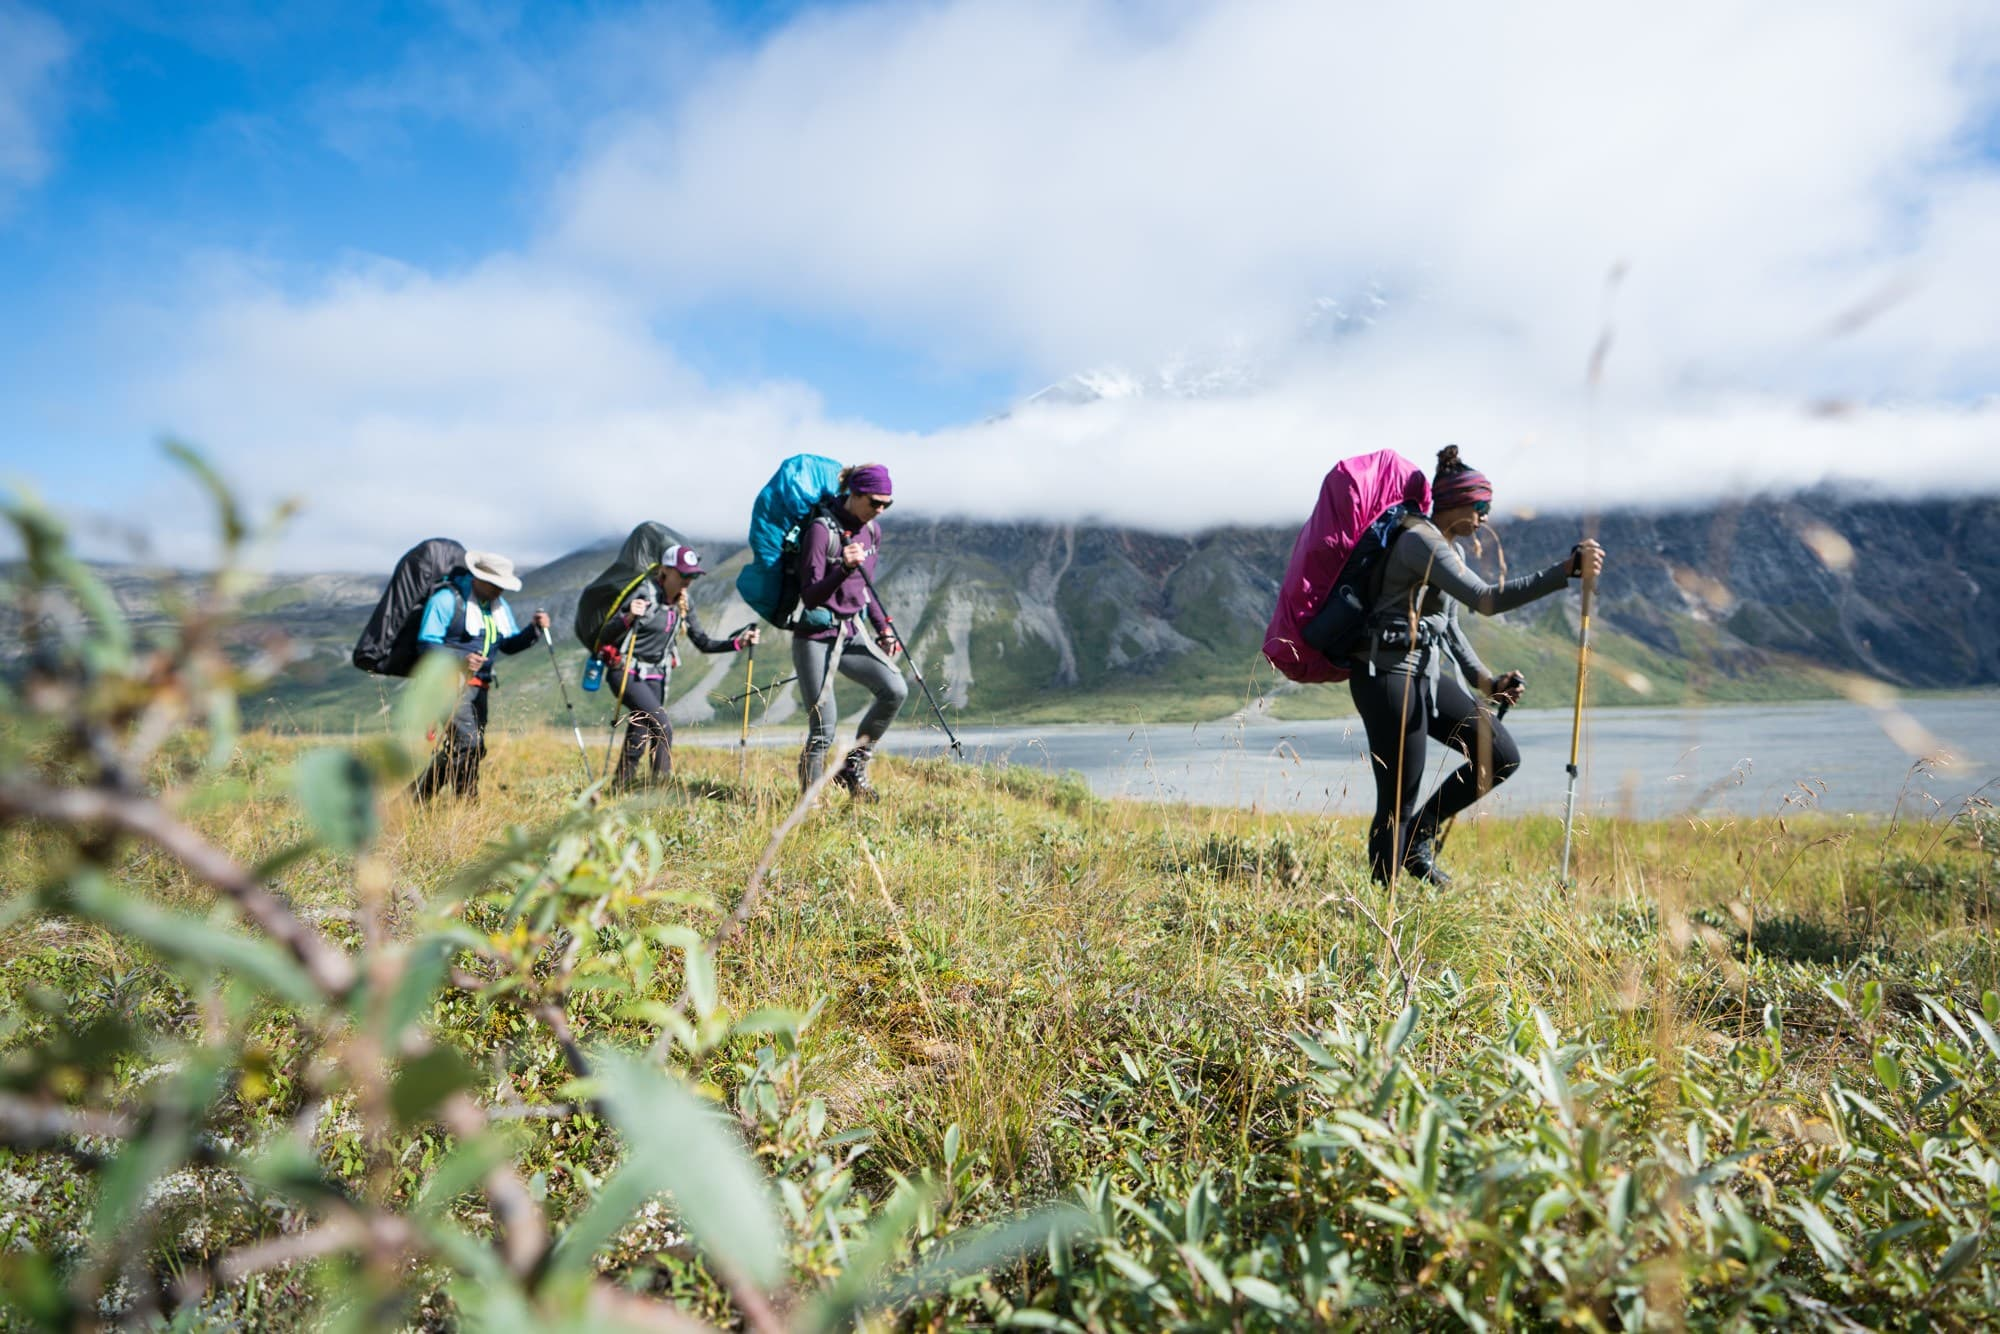 No More Excuses: Breaking Down the Top Barriers to the Outdoors